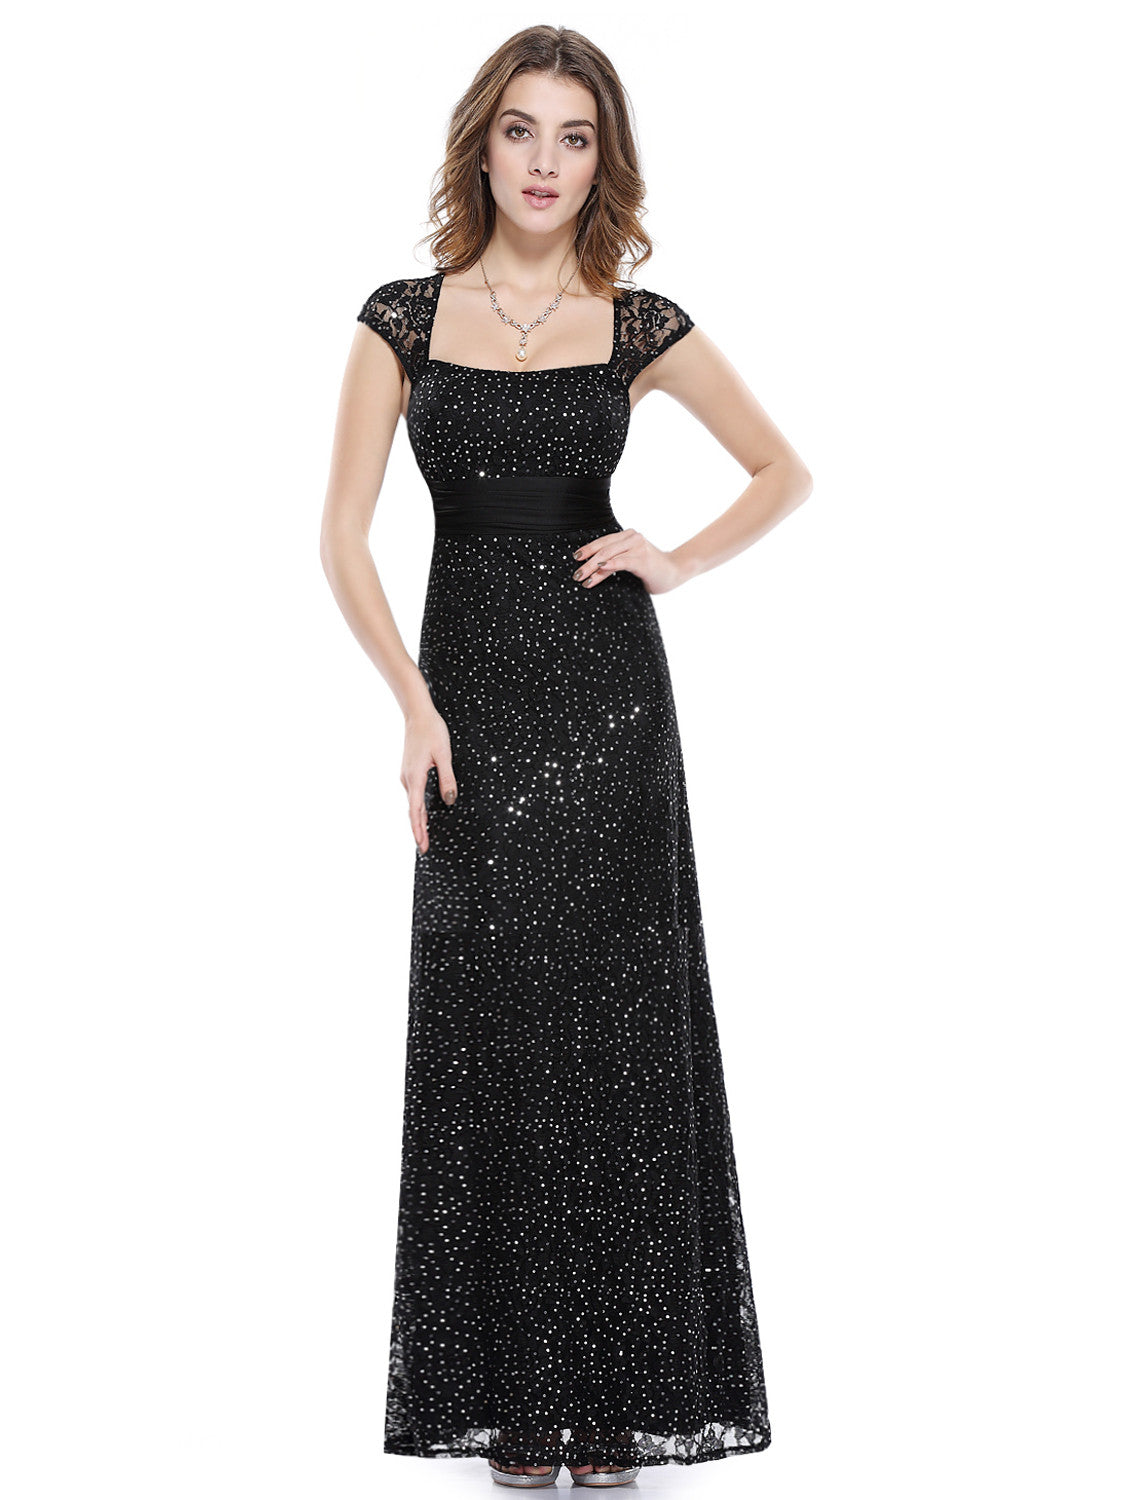 Black Elegant Lacy Long Evening Party Dress